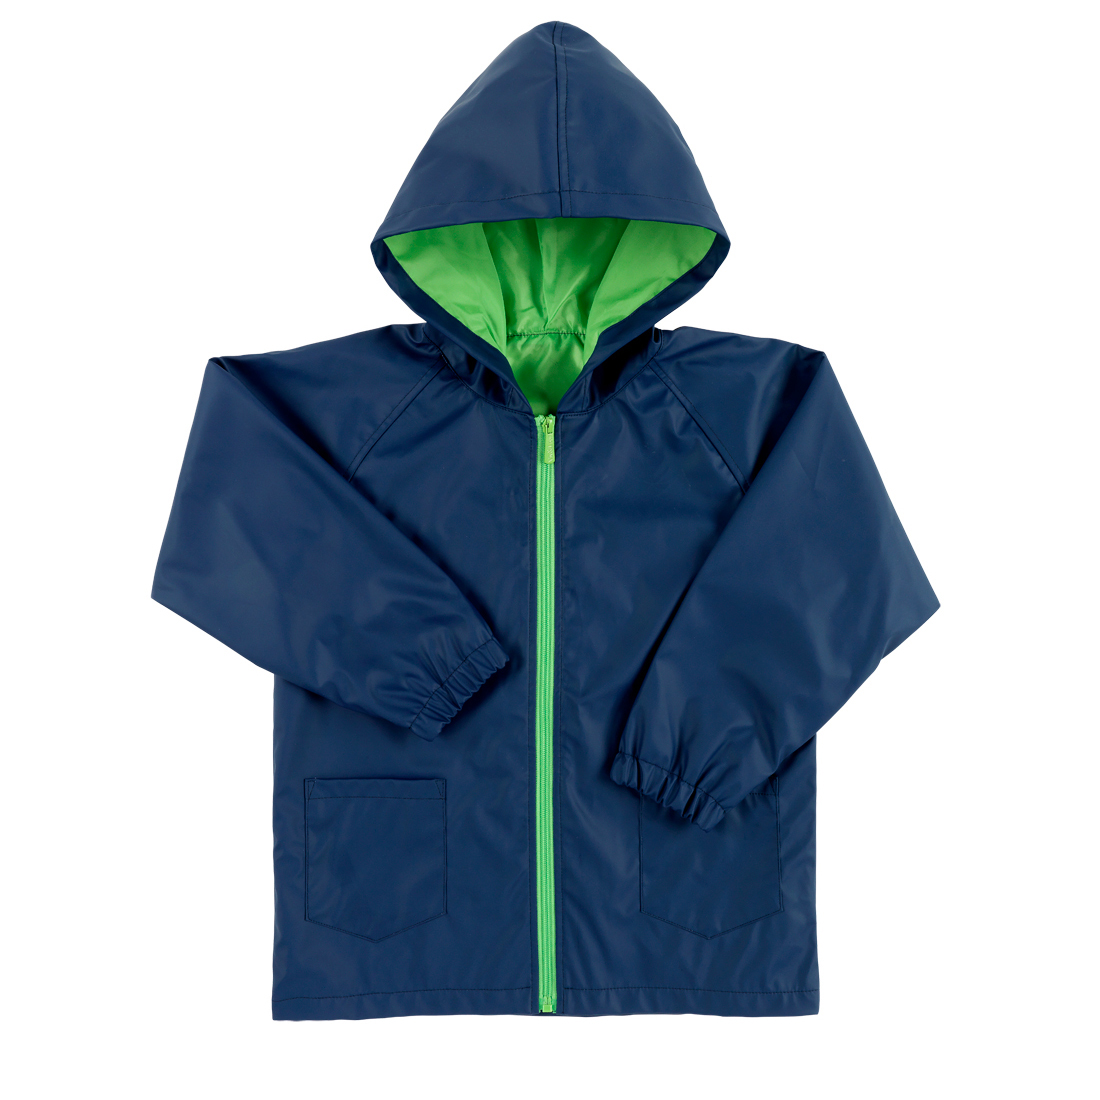 Navy Kids' Rain Jacket - Small, Medium or Large